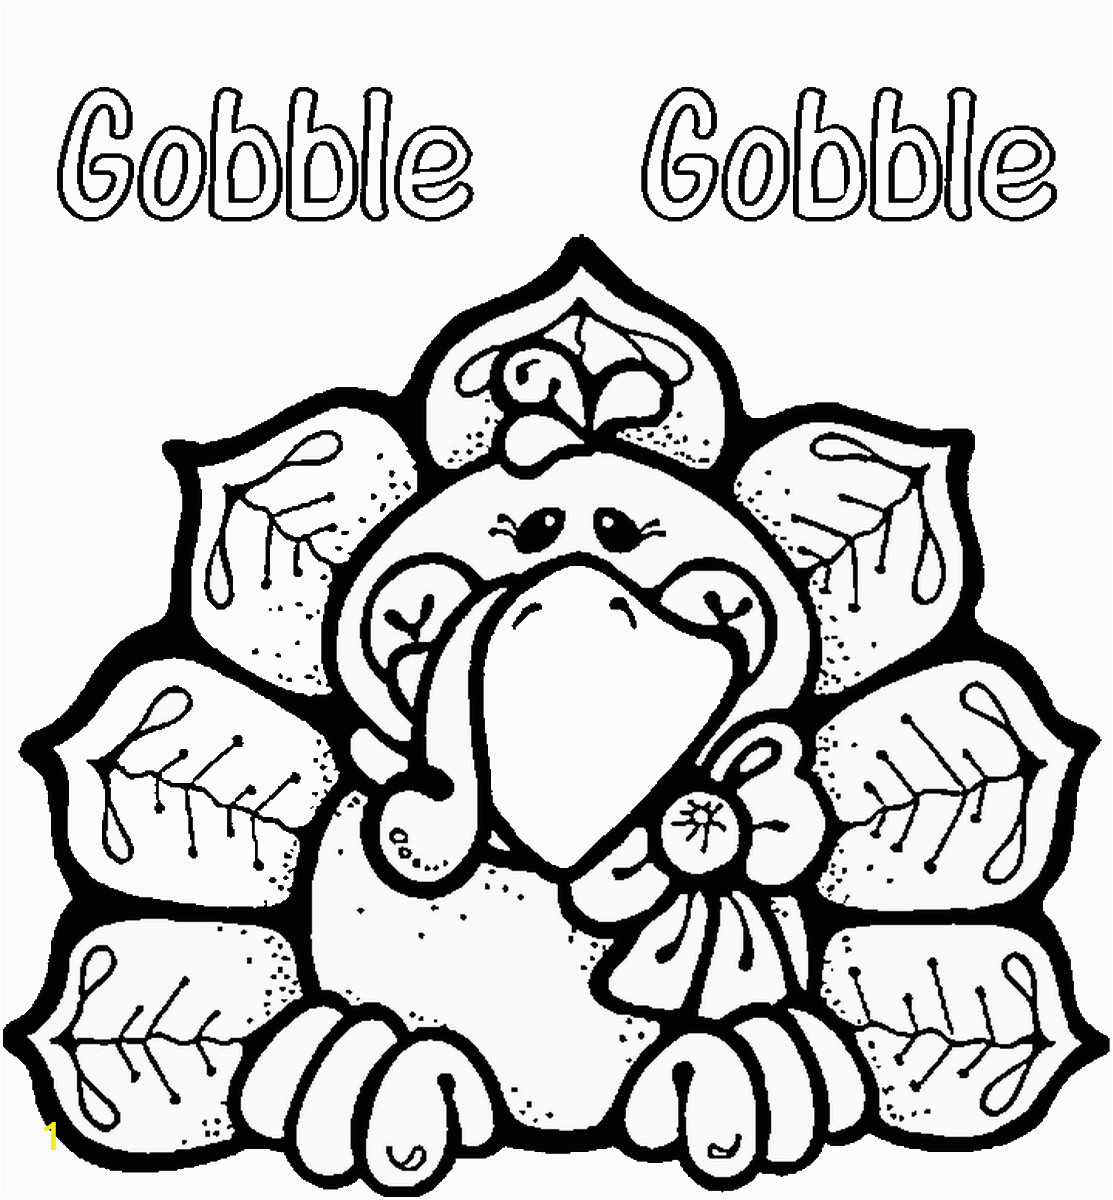 thanksgiving food coloring pages thanksgiving food coloring pages divyajananiorg pages food coloring thanksgiving